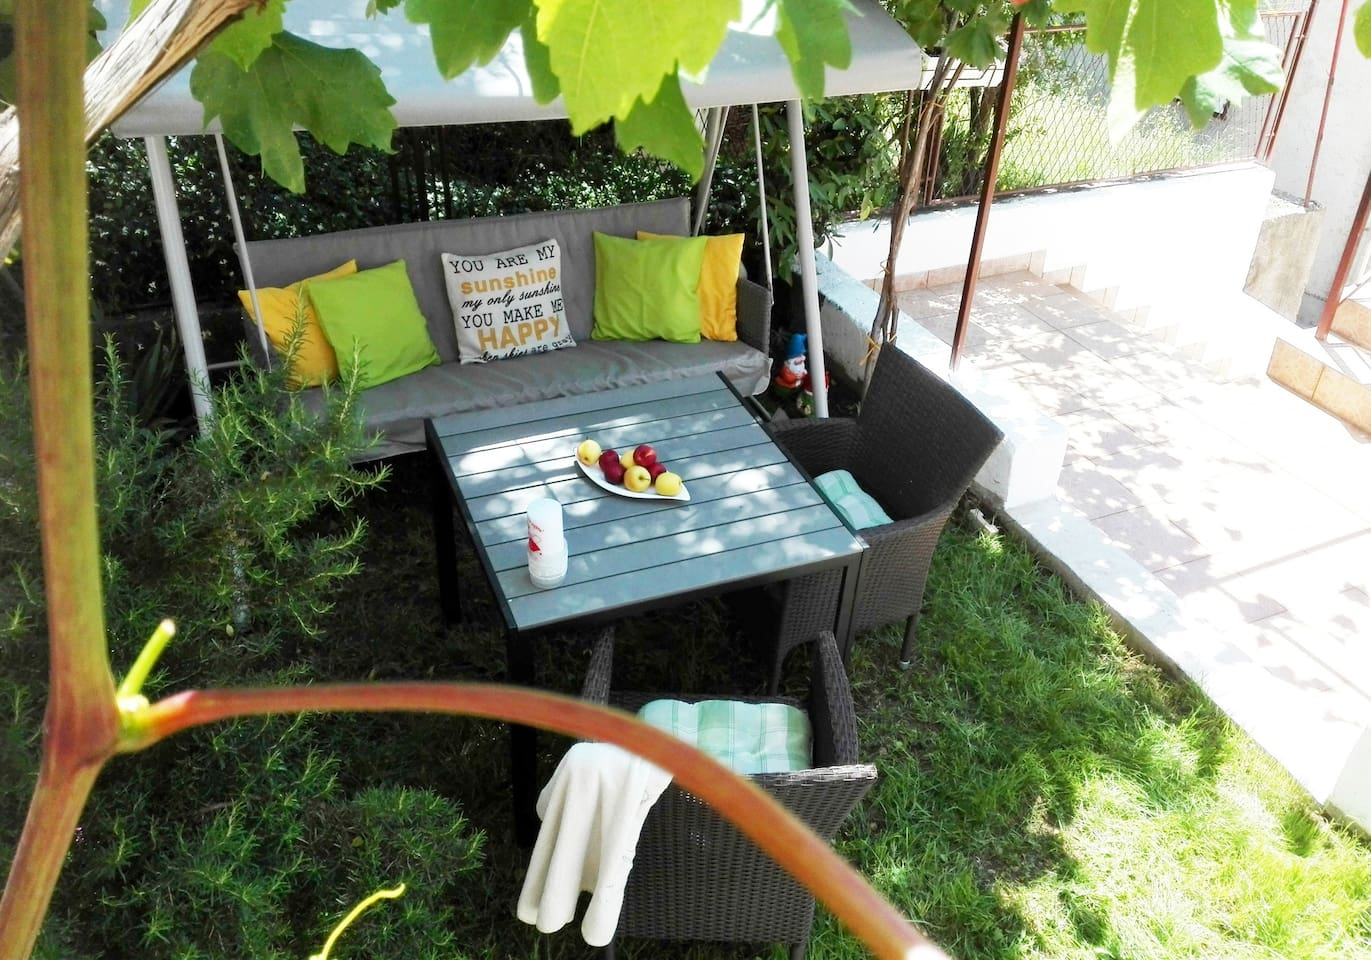 dear guests you this is our garden space , while resting in the shade of the vine trees and you  are more than welcome to relax and enjoy the view while maybe having coffee our having a meal :)